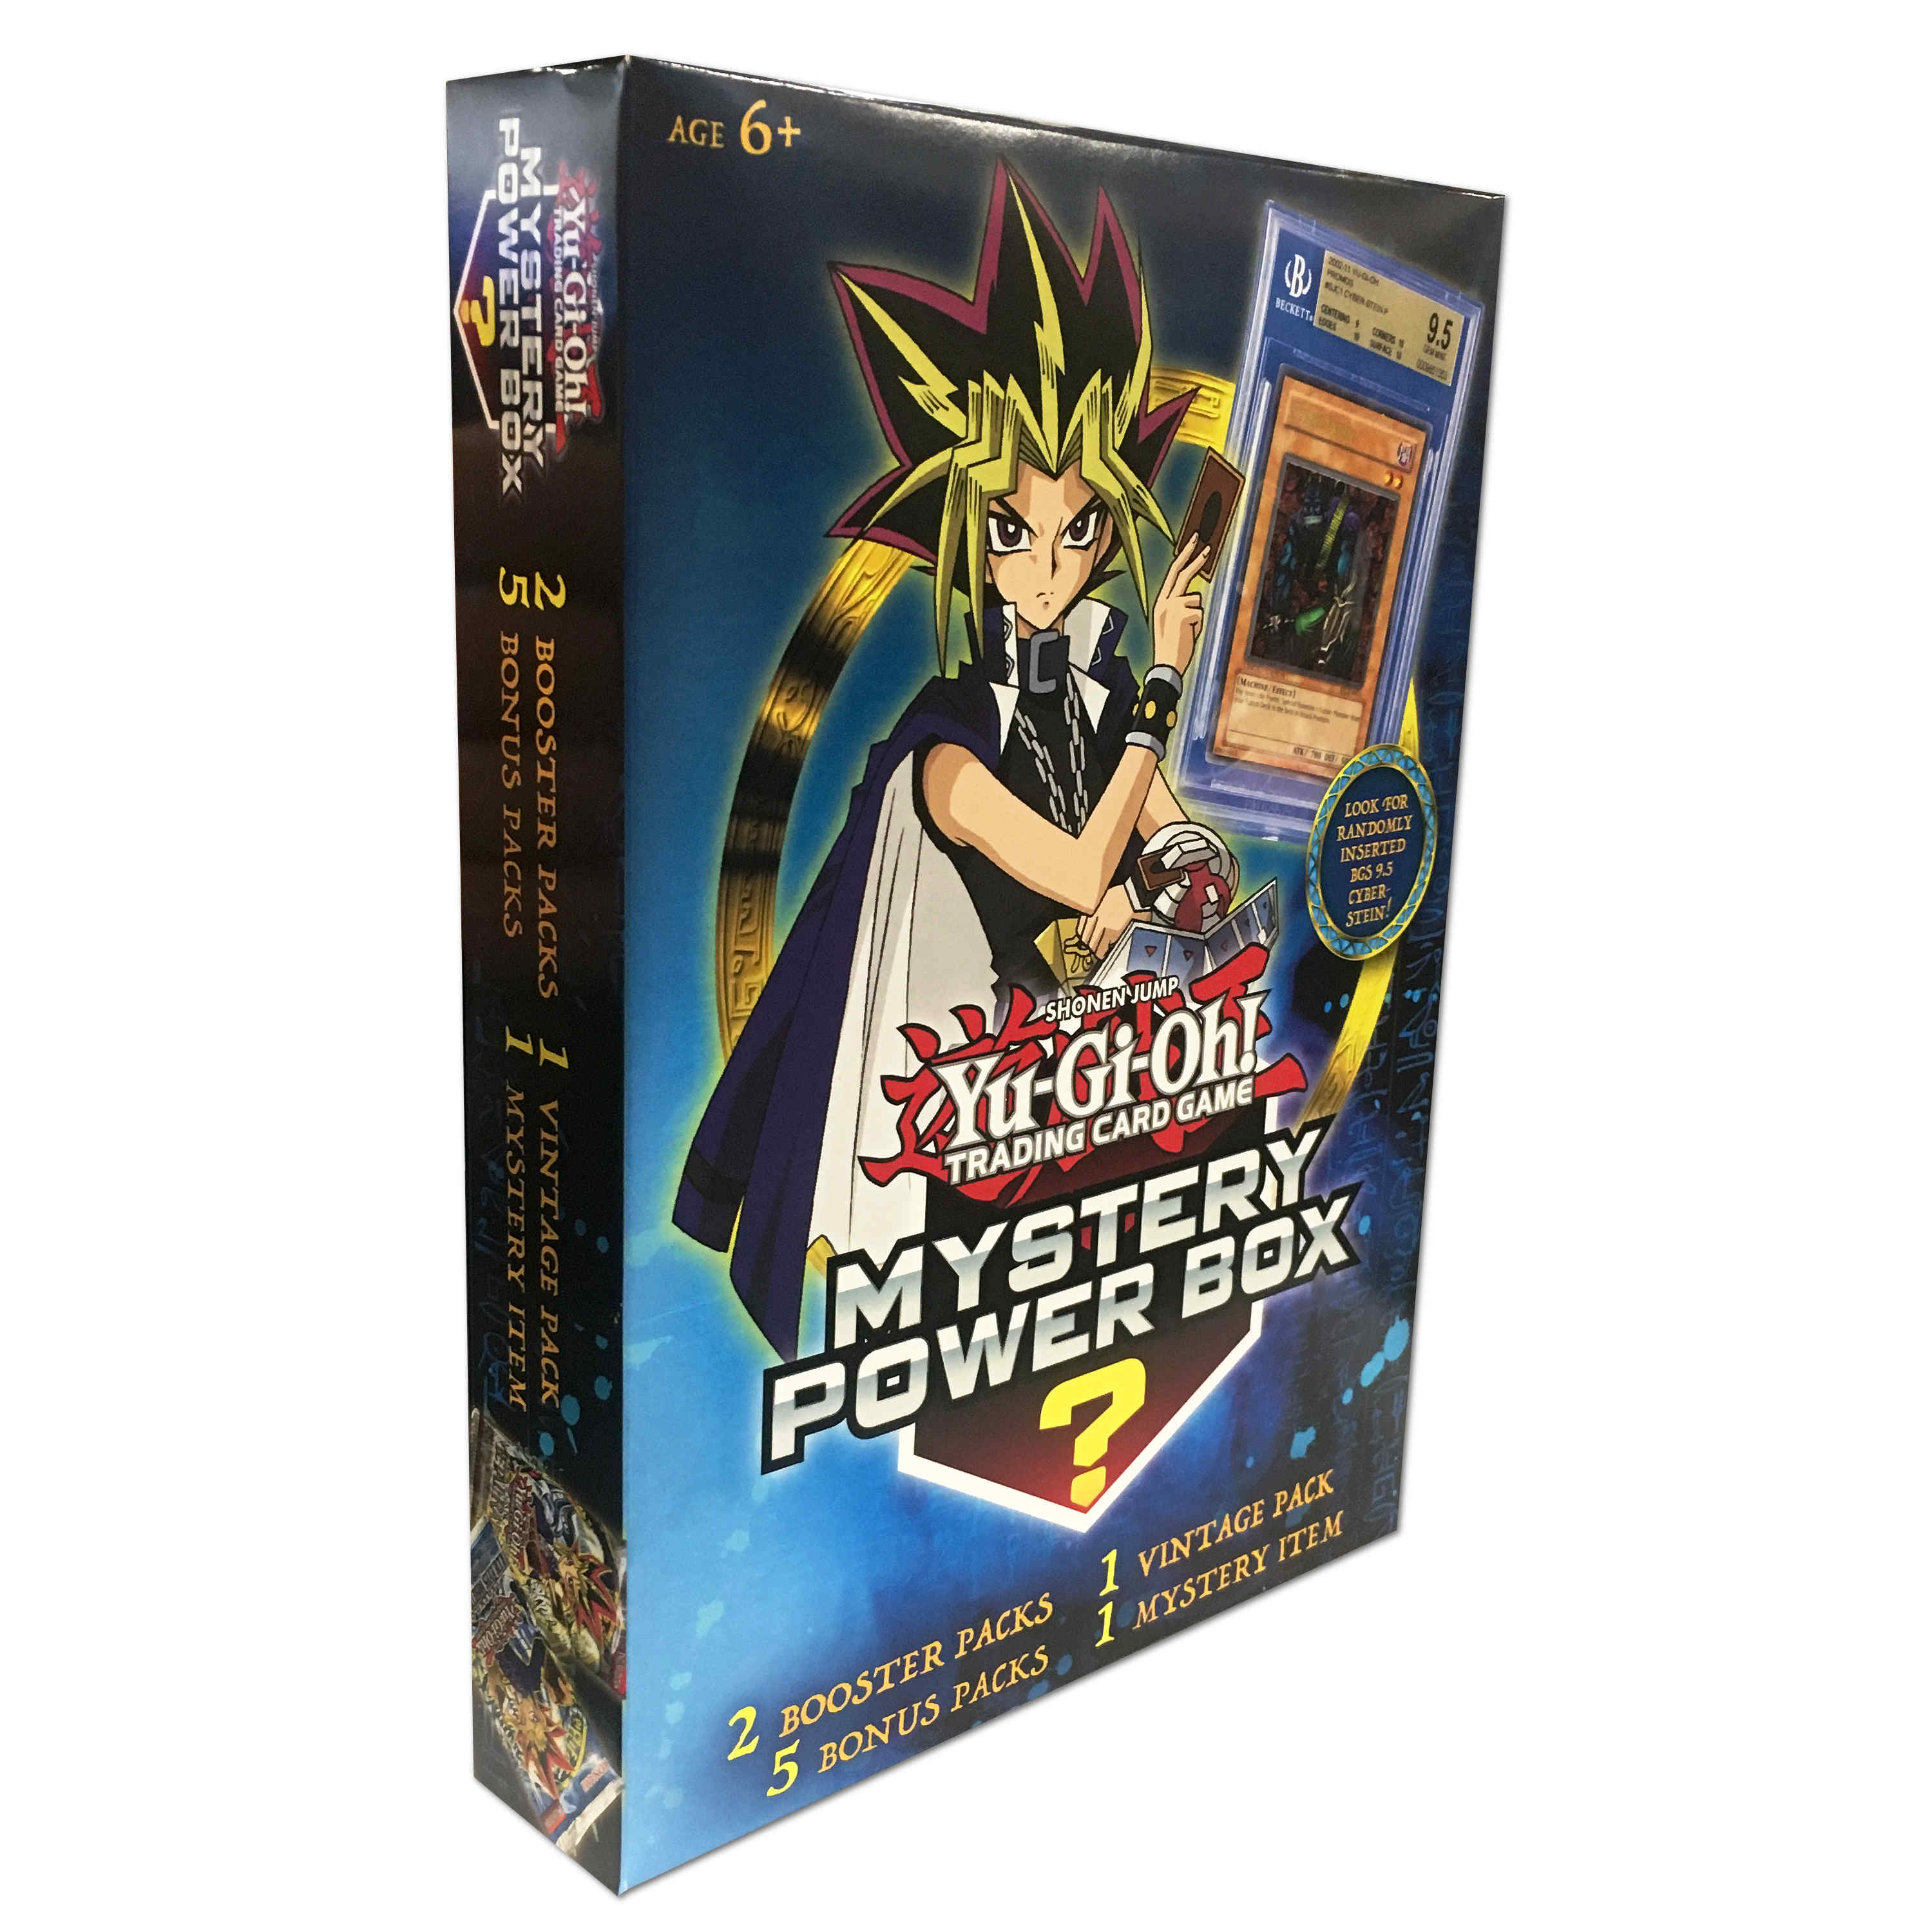 Yu-Gi-Oh! Trading Card Game Mystery Power Box!